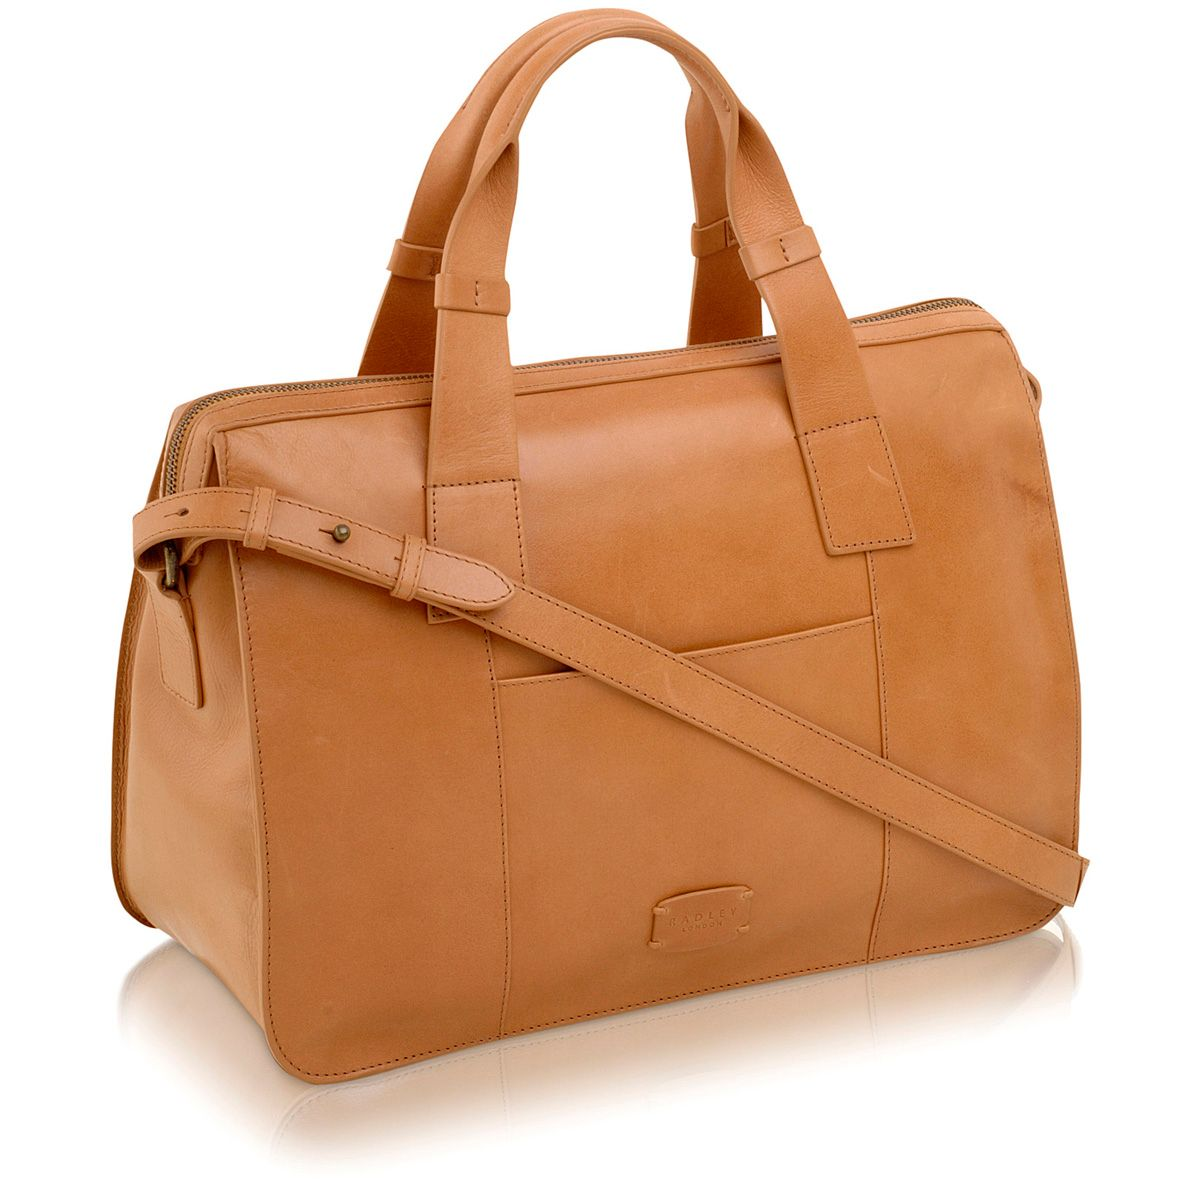 Maiden tan large leather cross body tote bag